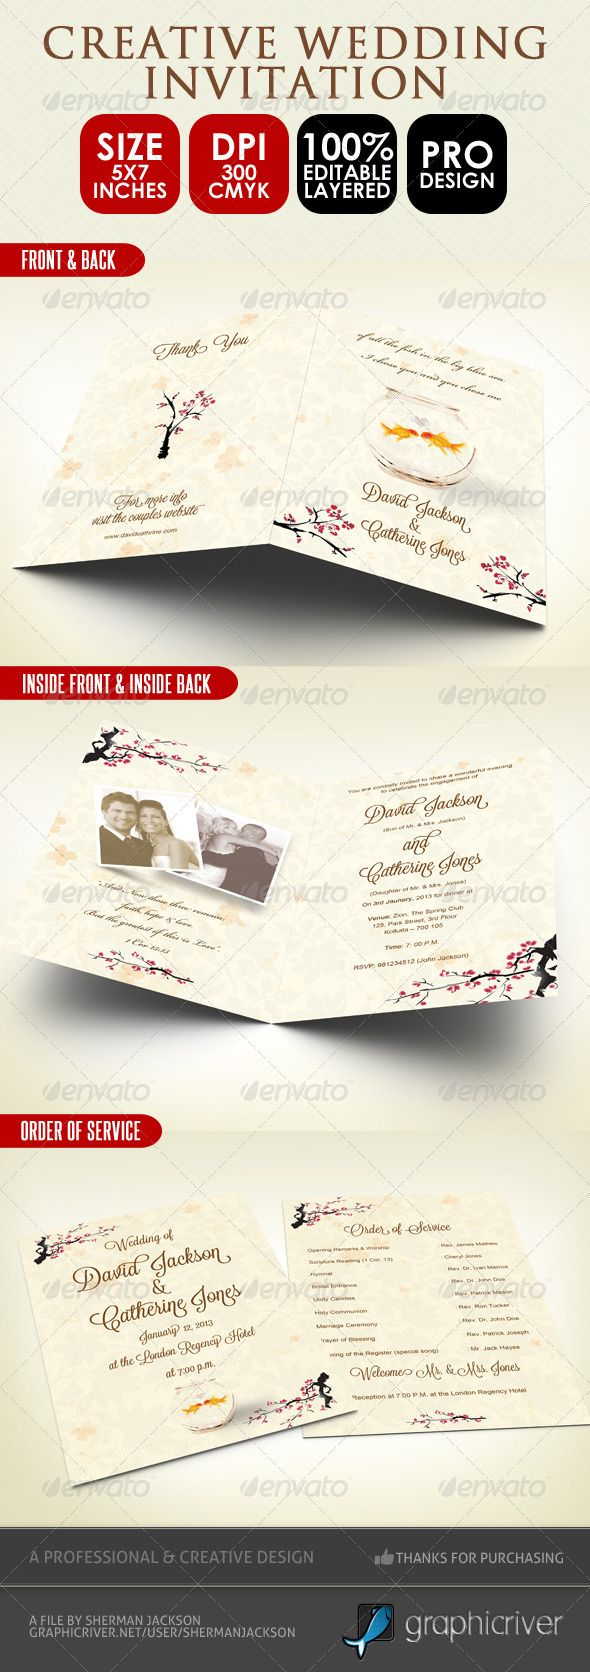 how to write muslim wedding invitation card%0A Creative Wedding Card  u     Order of Service PSD